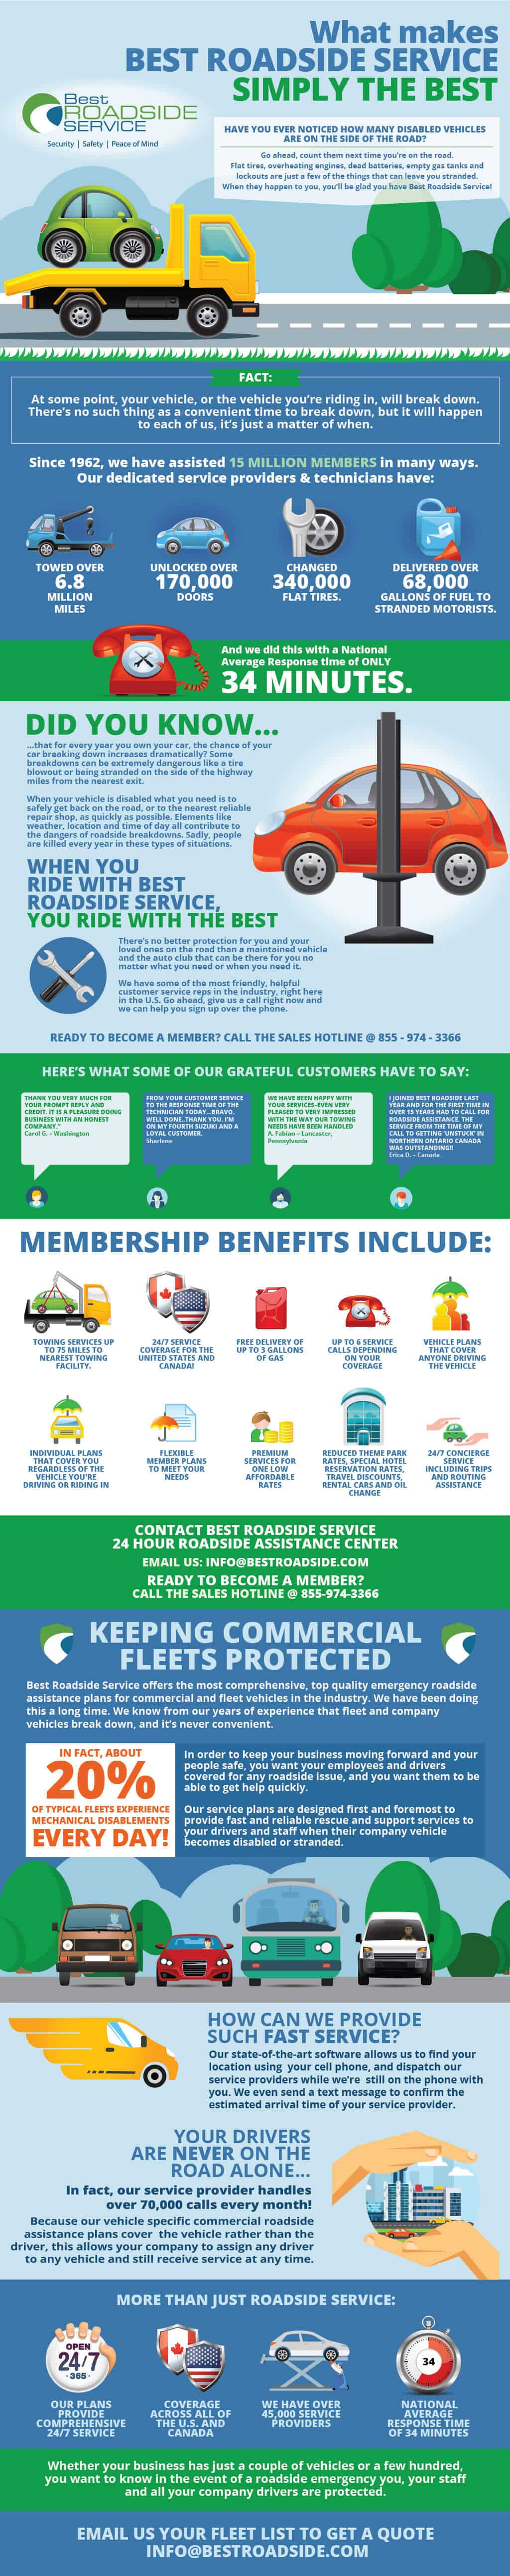 bestroadsideservice-infographic